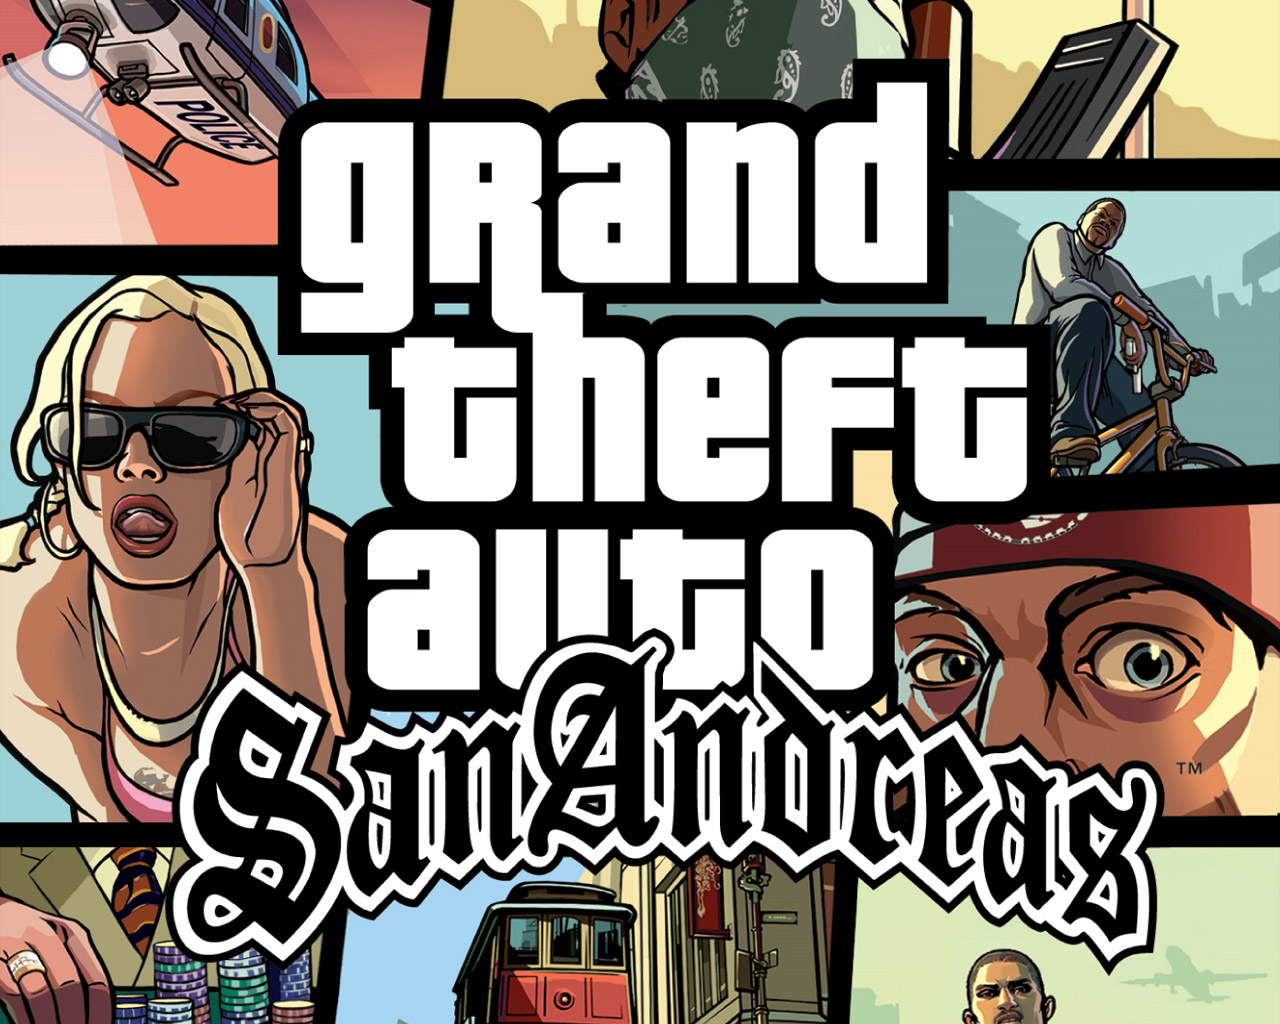 Gta San Andreas Wallpaper Embed Share View Previous Next